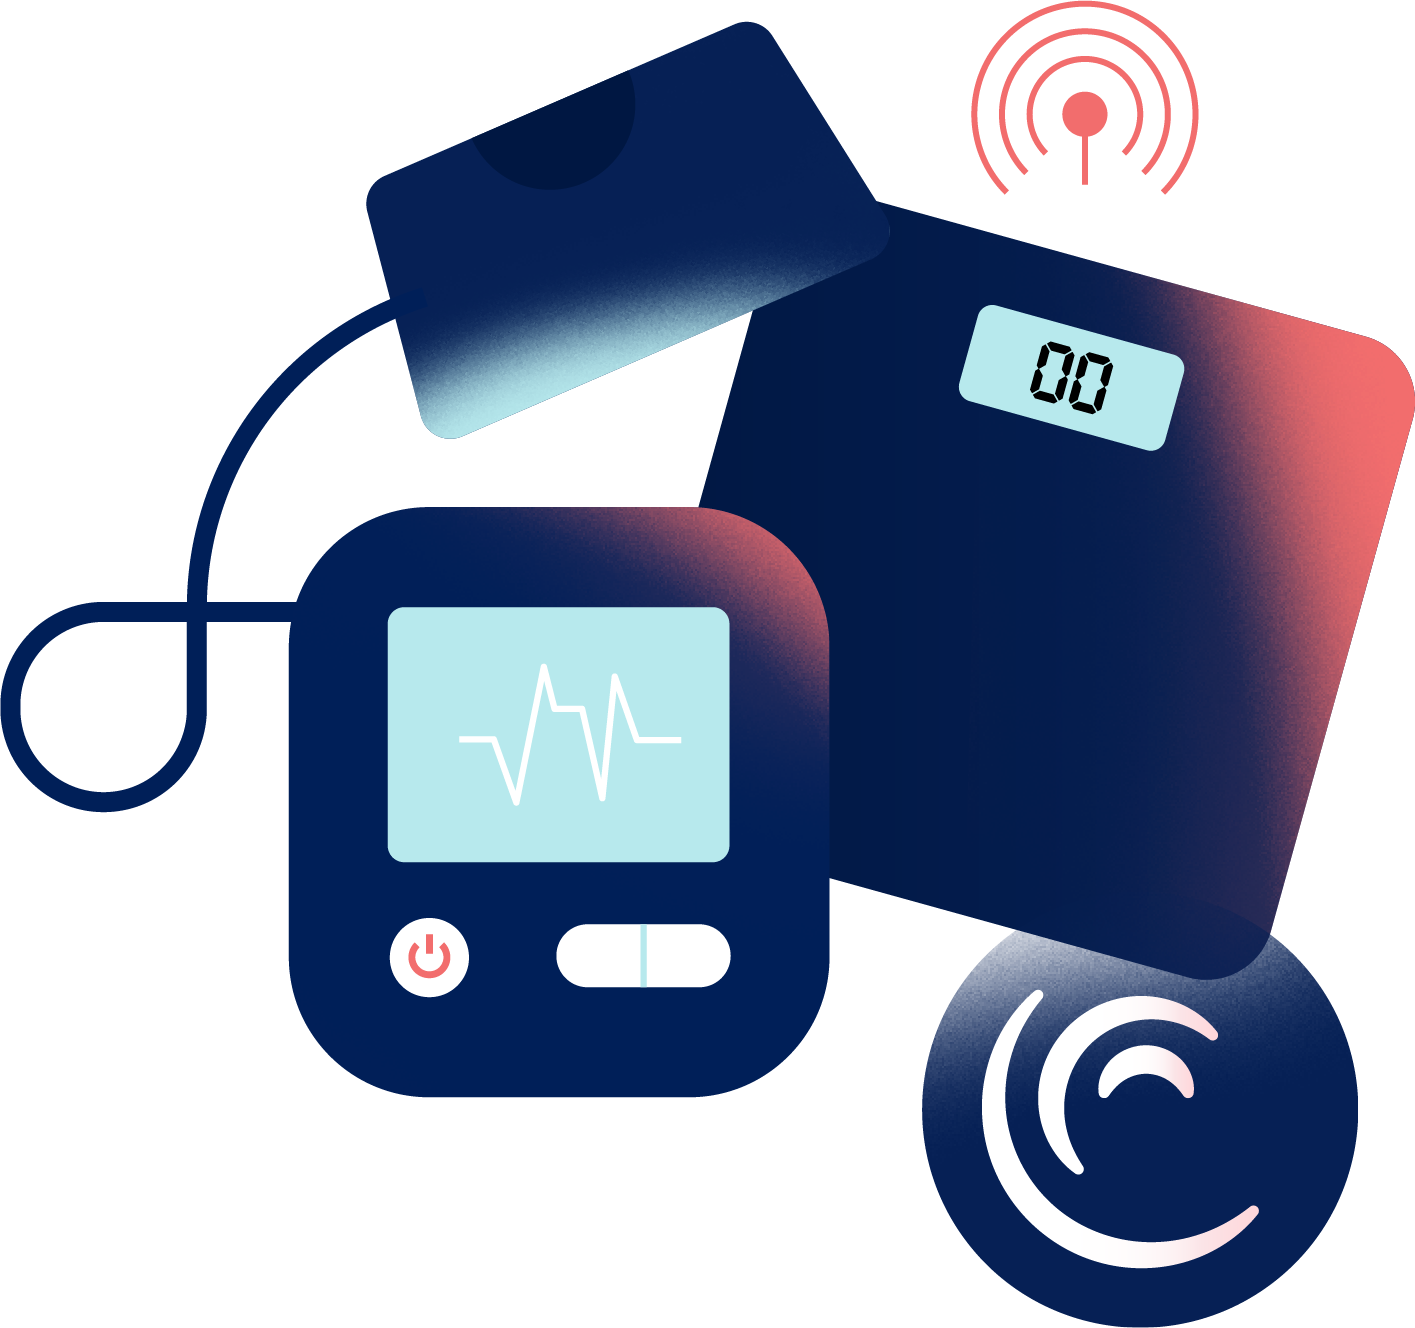 Cadence smart devices